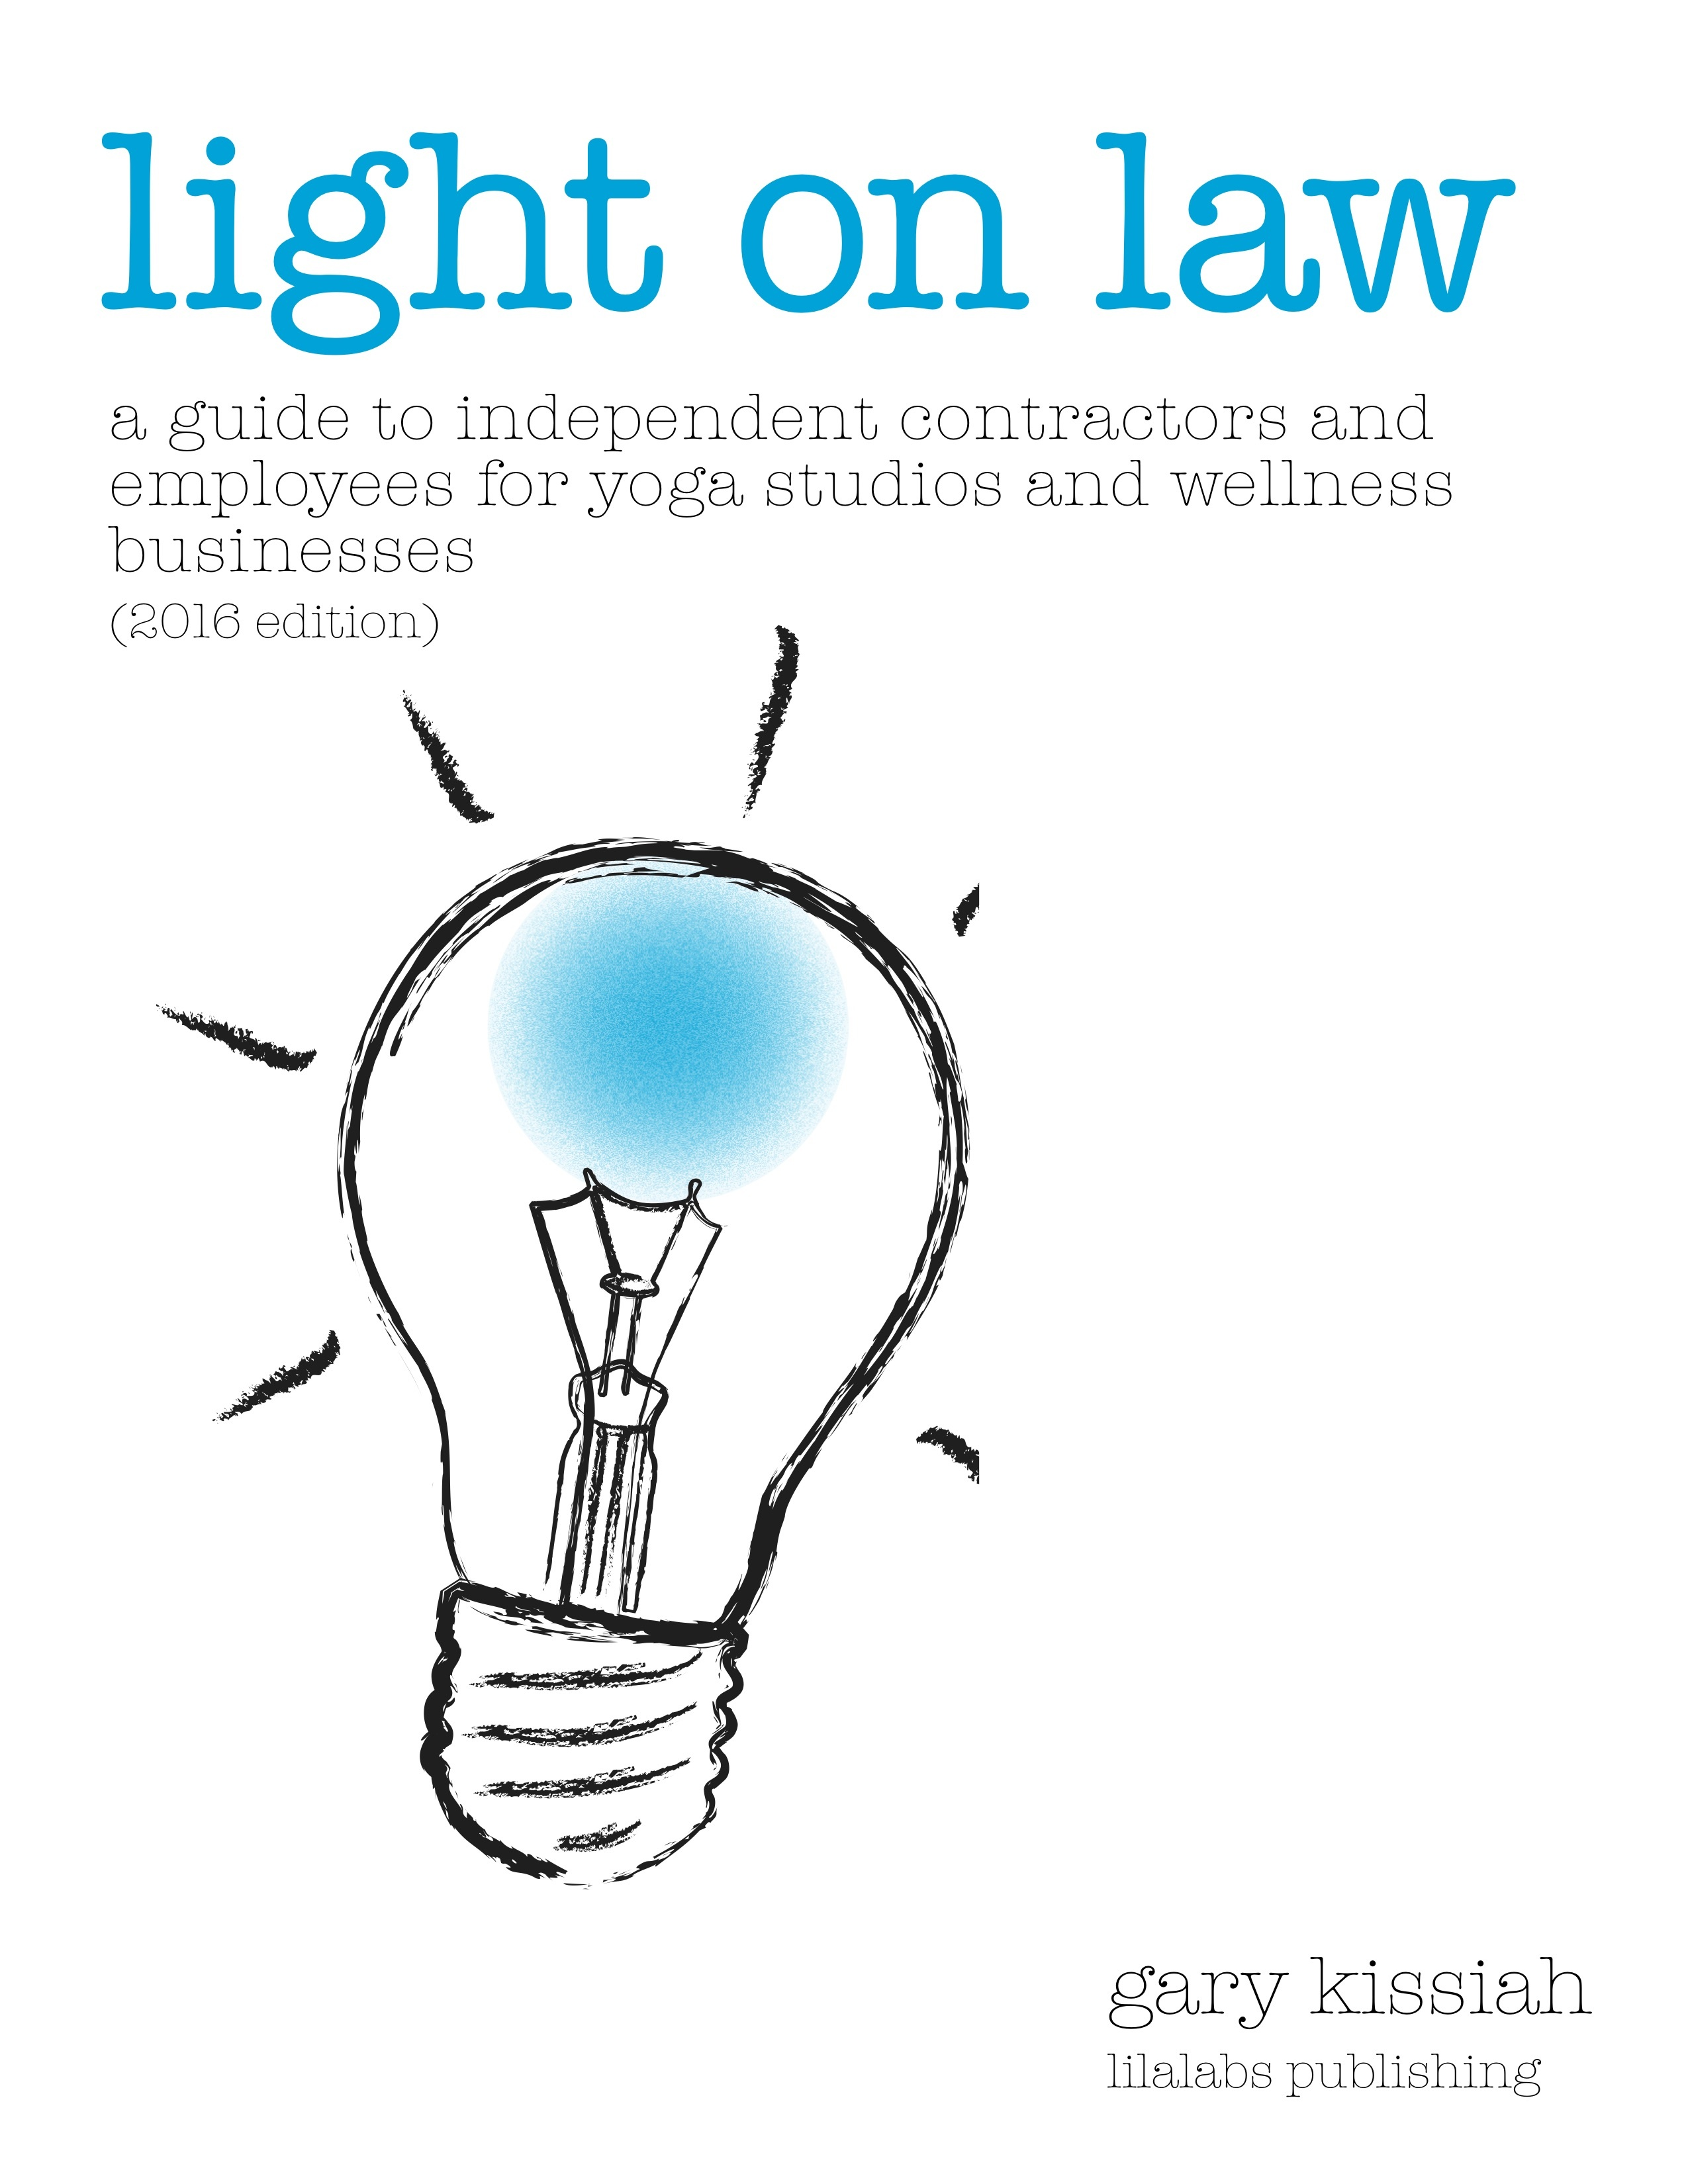 Light on Law-A Guide to Independent Contractors and Employees for Yoga Studios (2016 Edition)